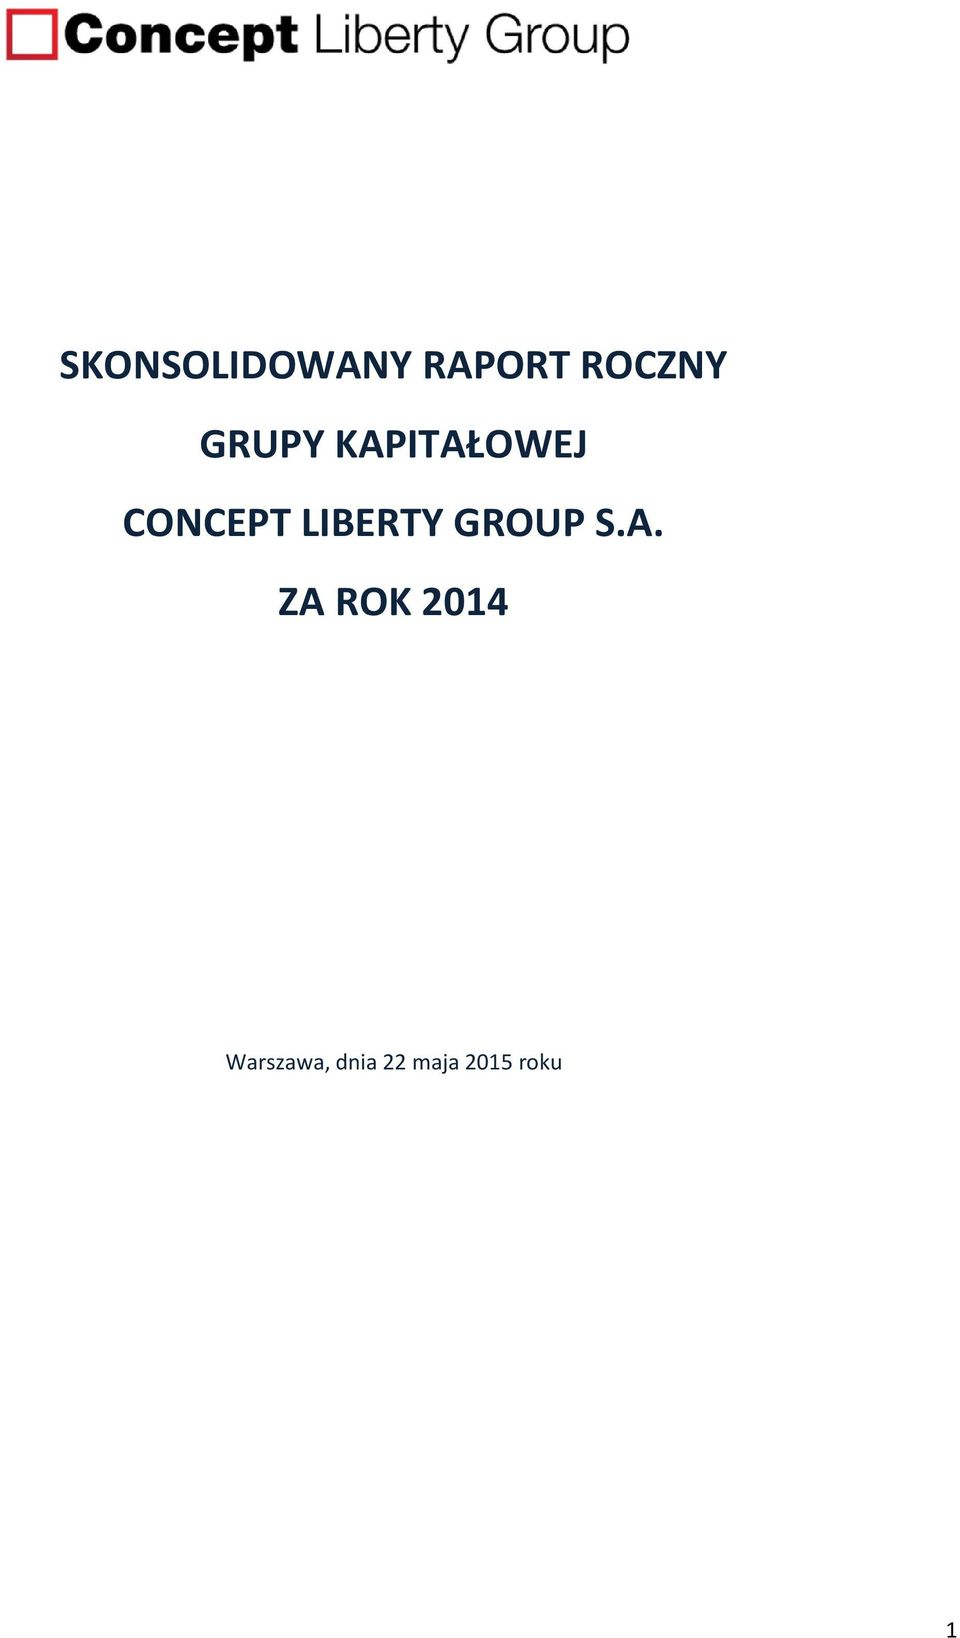 LIBERTY GROUP S.A.